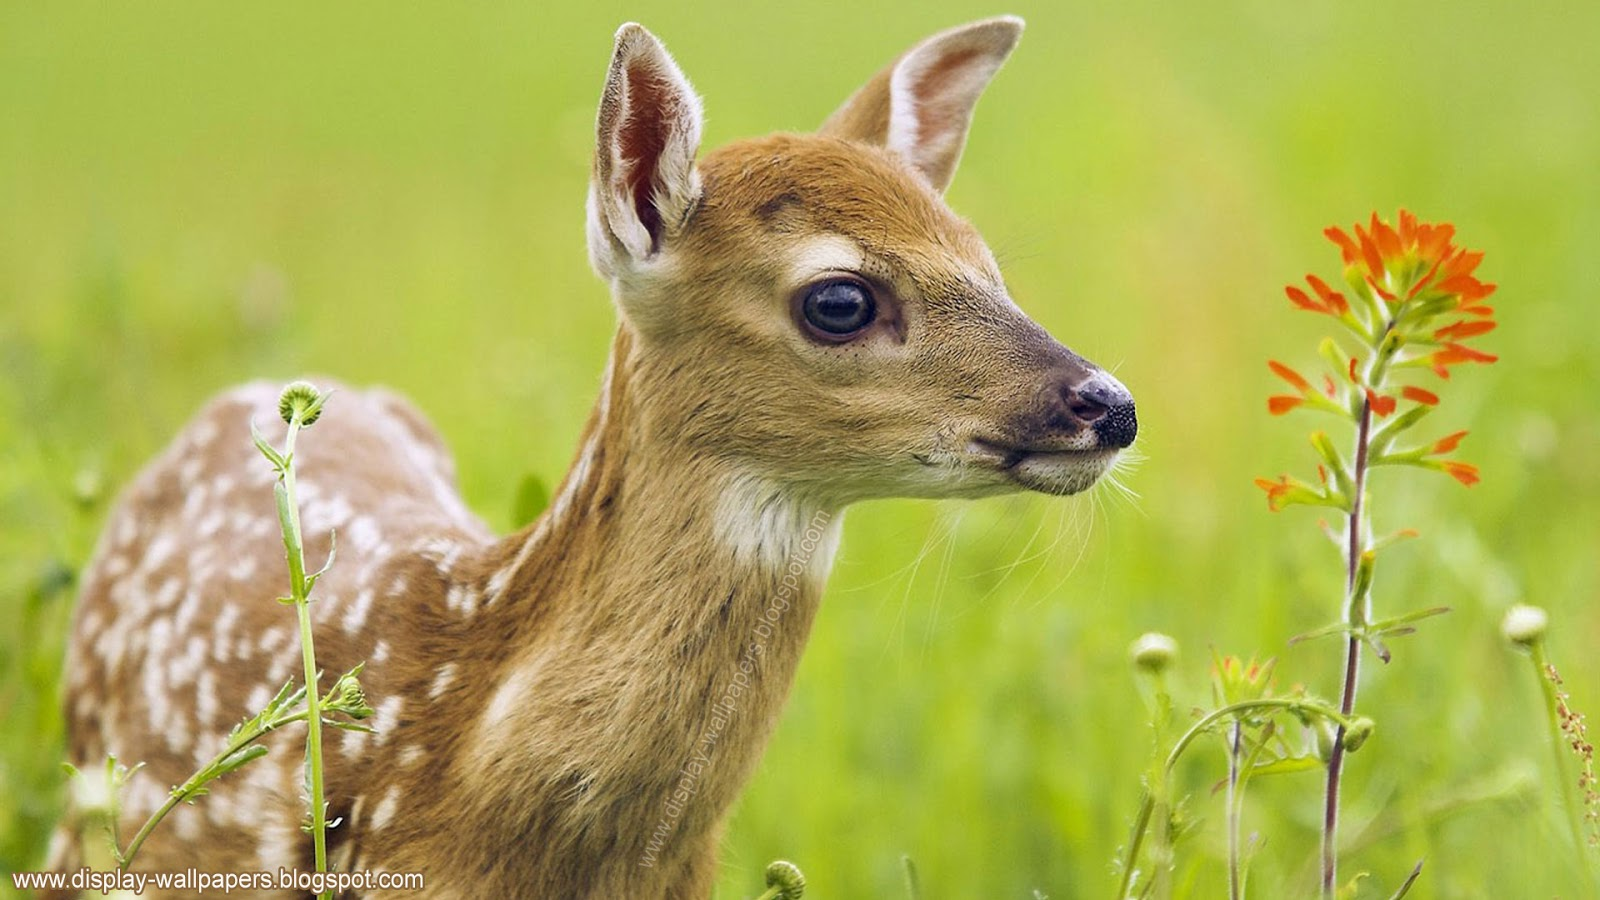 Baby animal background wallpaper wallpapersafari - Animal pictures for desktop backgrounds ...